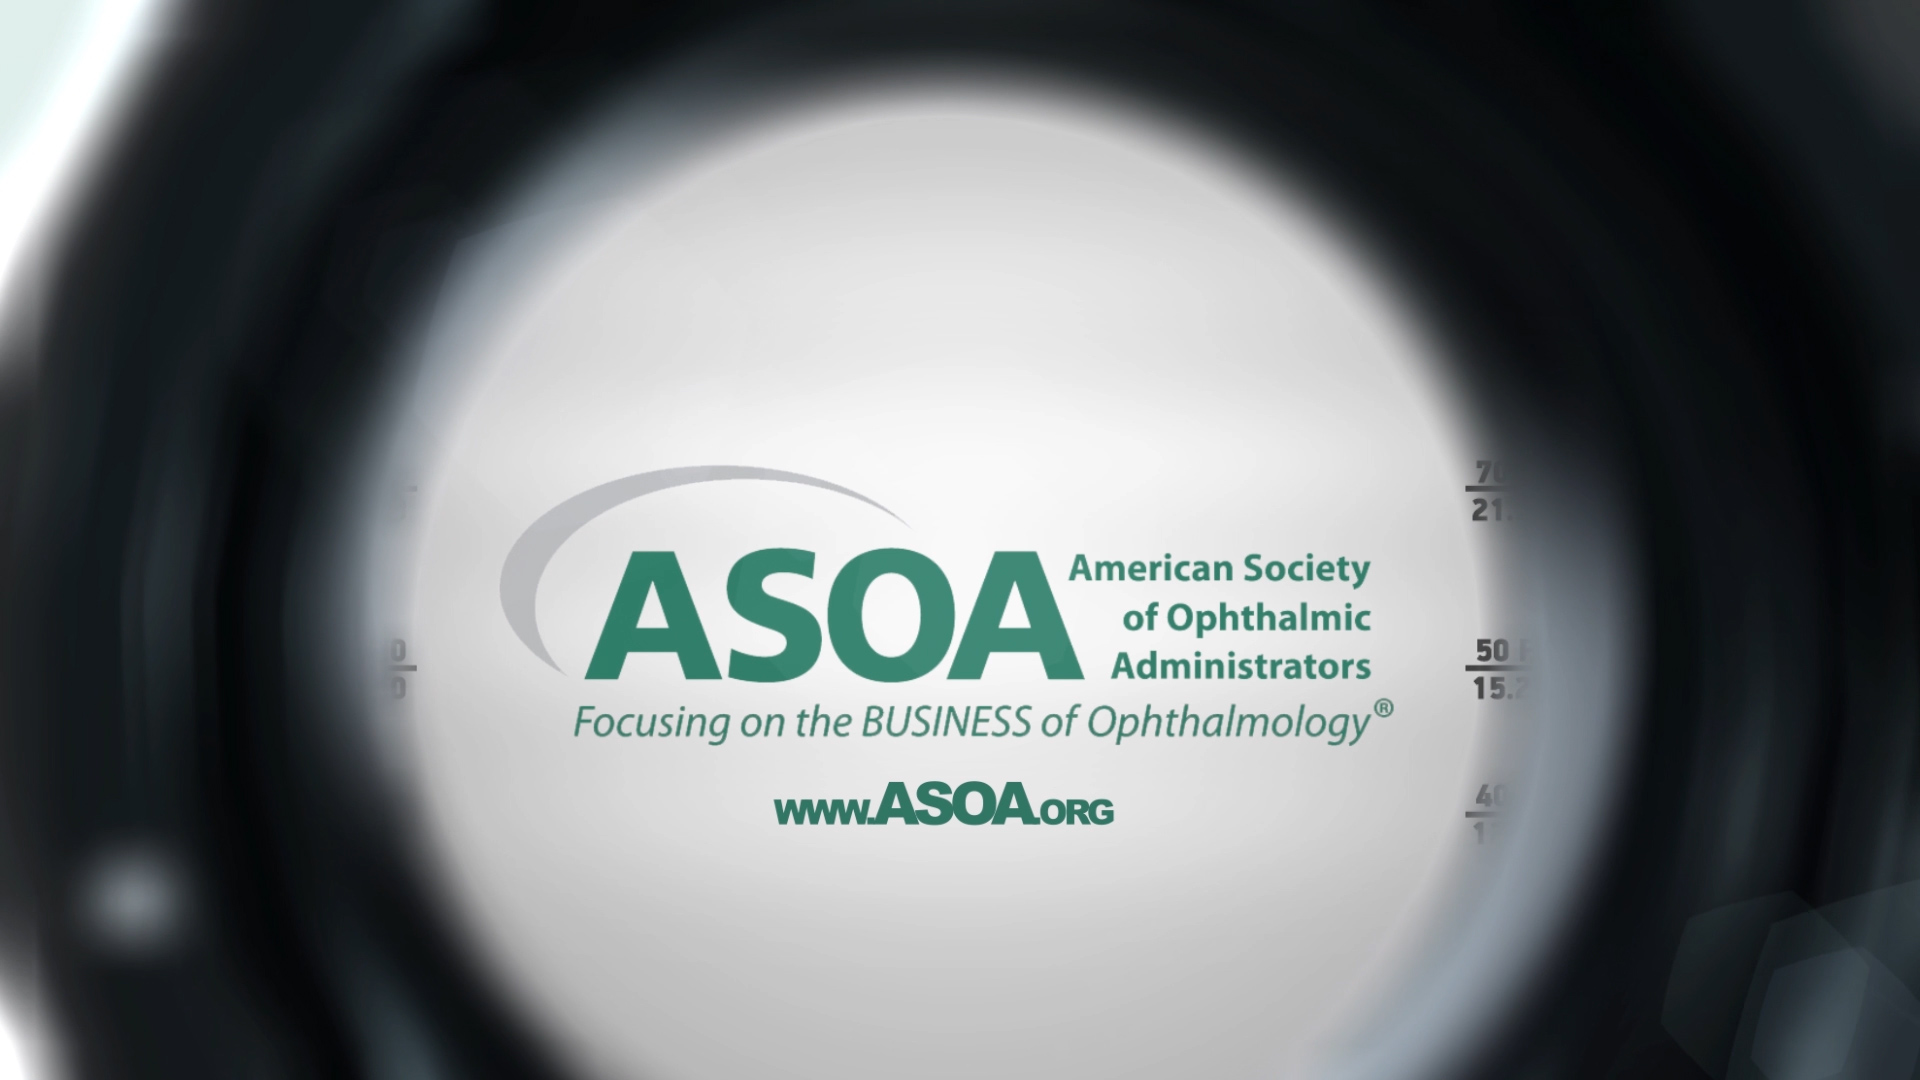 Training and Recruitment Video Screenshot for the American Society of Ophthalmic Administrators